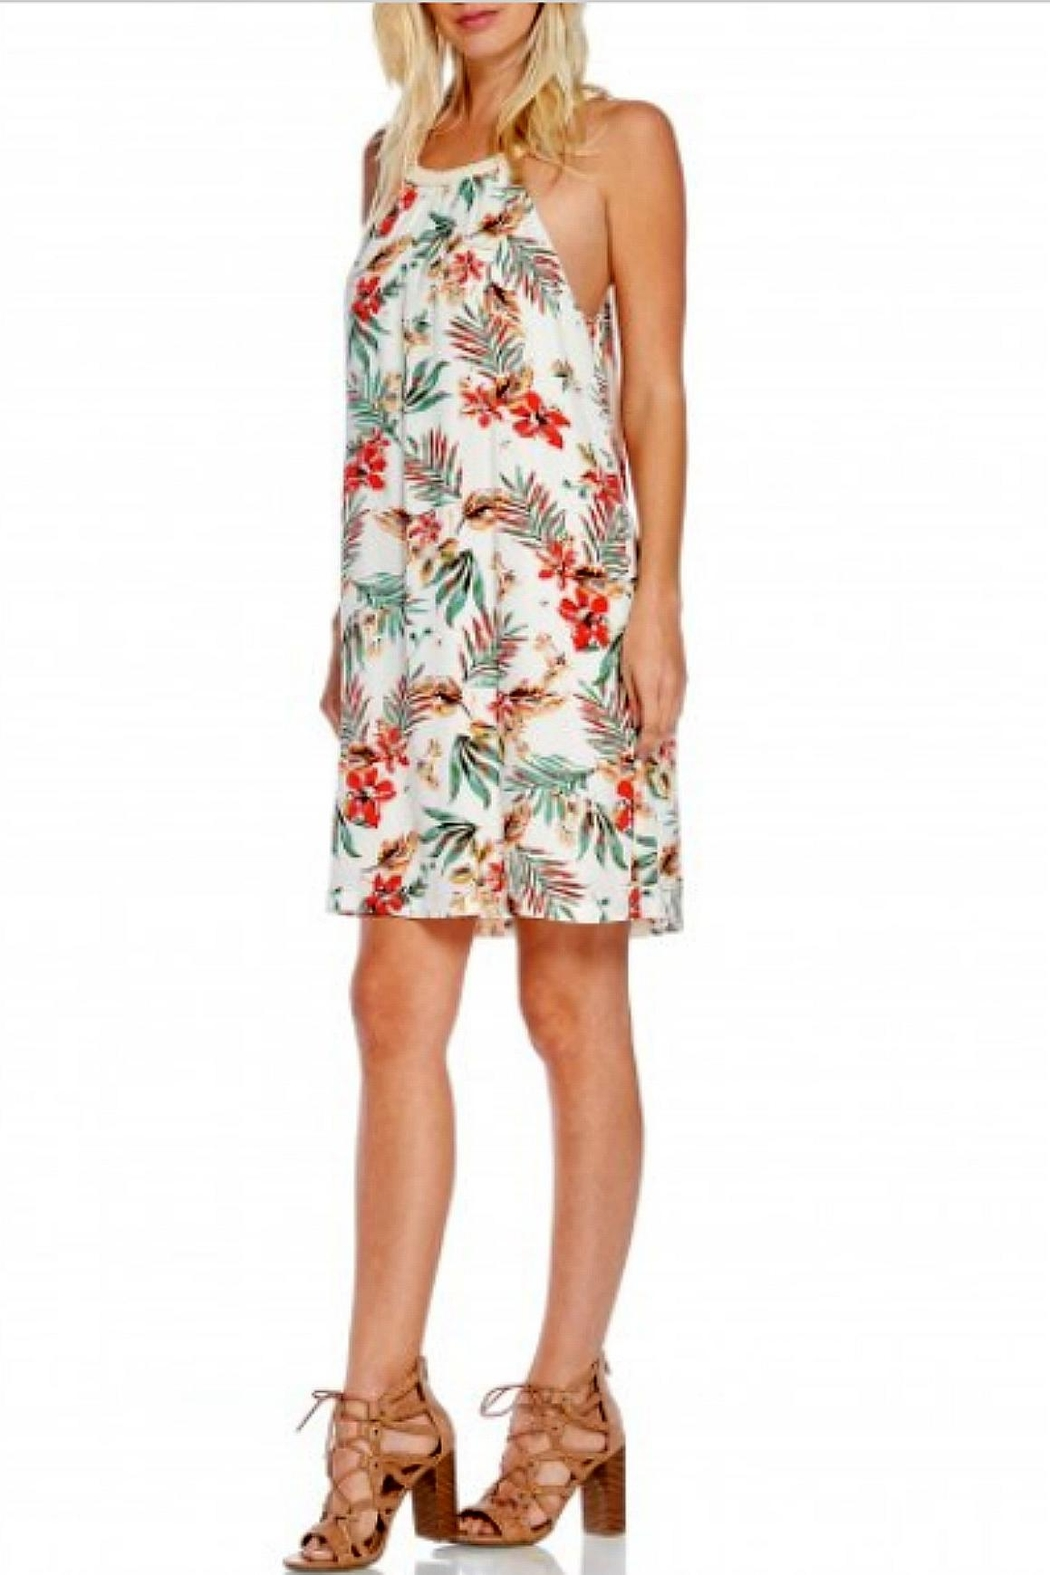 Skies Are Blue Cream Floral Dress - Main Image